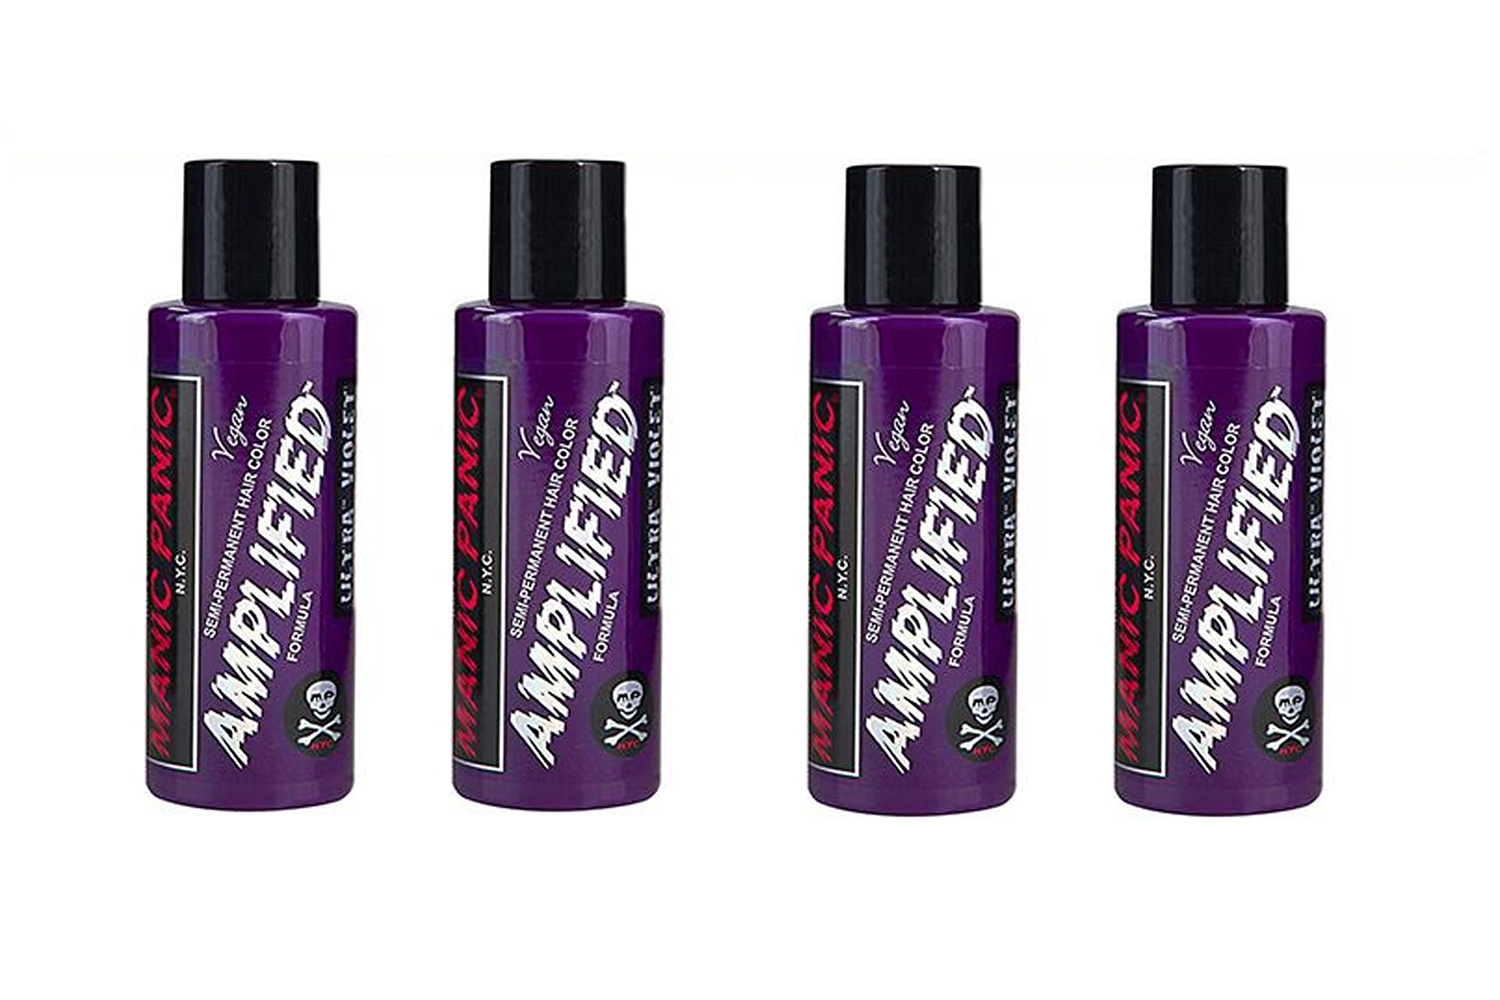 4X-Manic-Amplificada-Semi-Permanente-Coloracion-de-Cabello-Varios-Colores-118ml